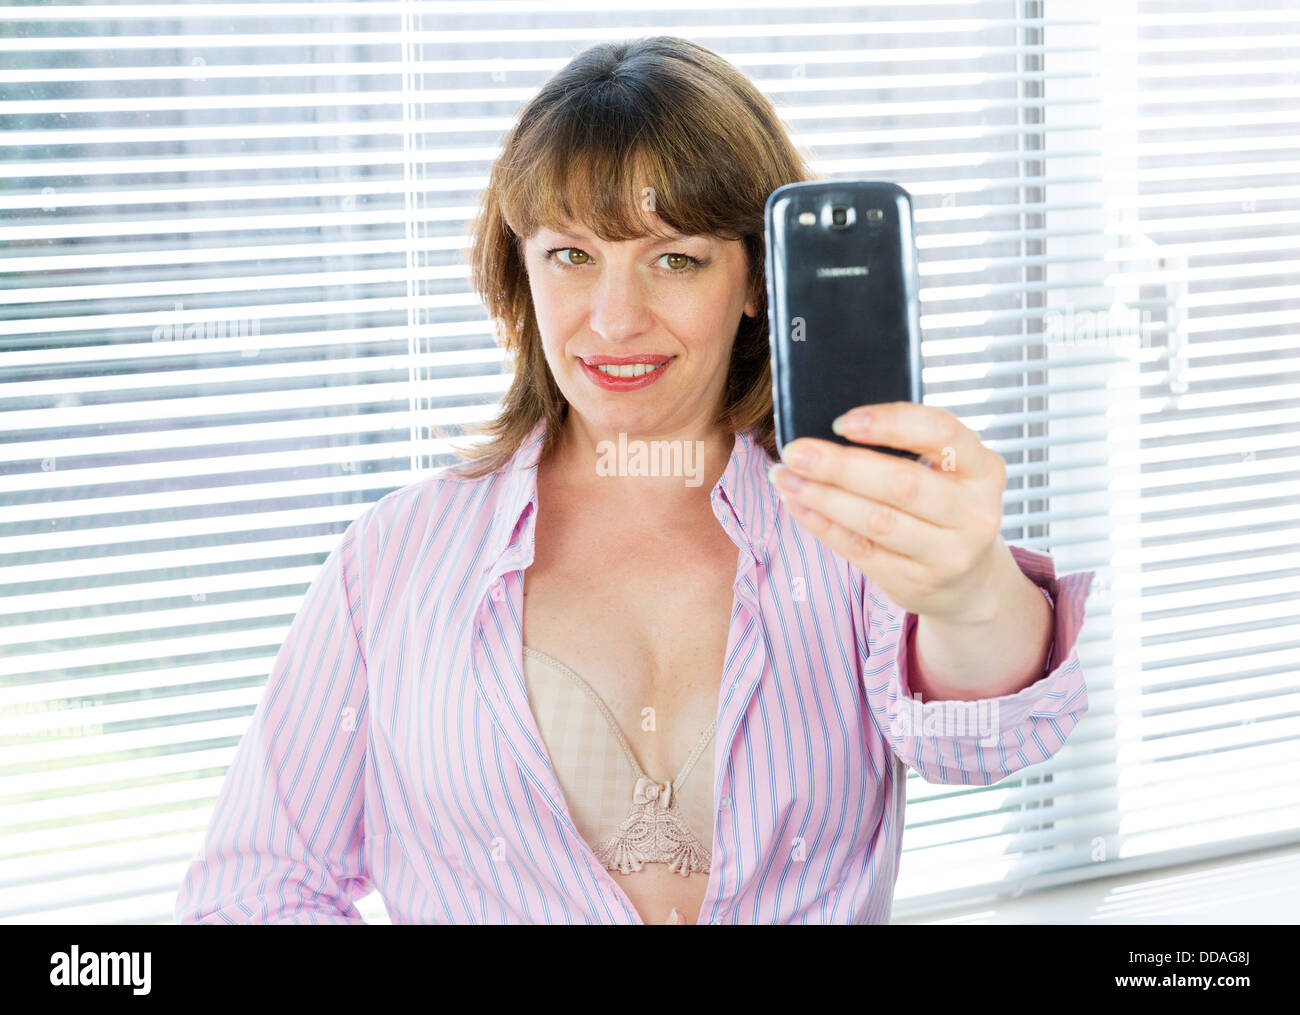 How to take sexting selfies